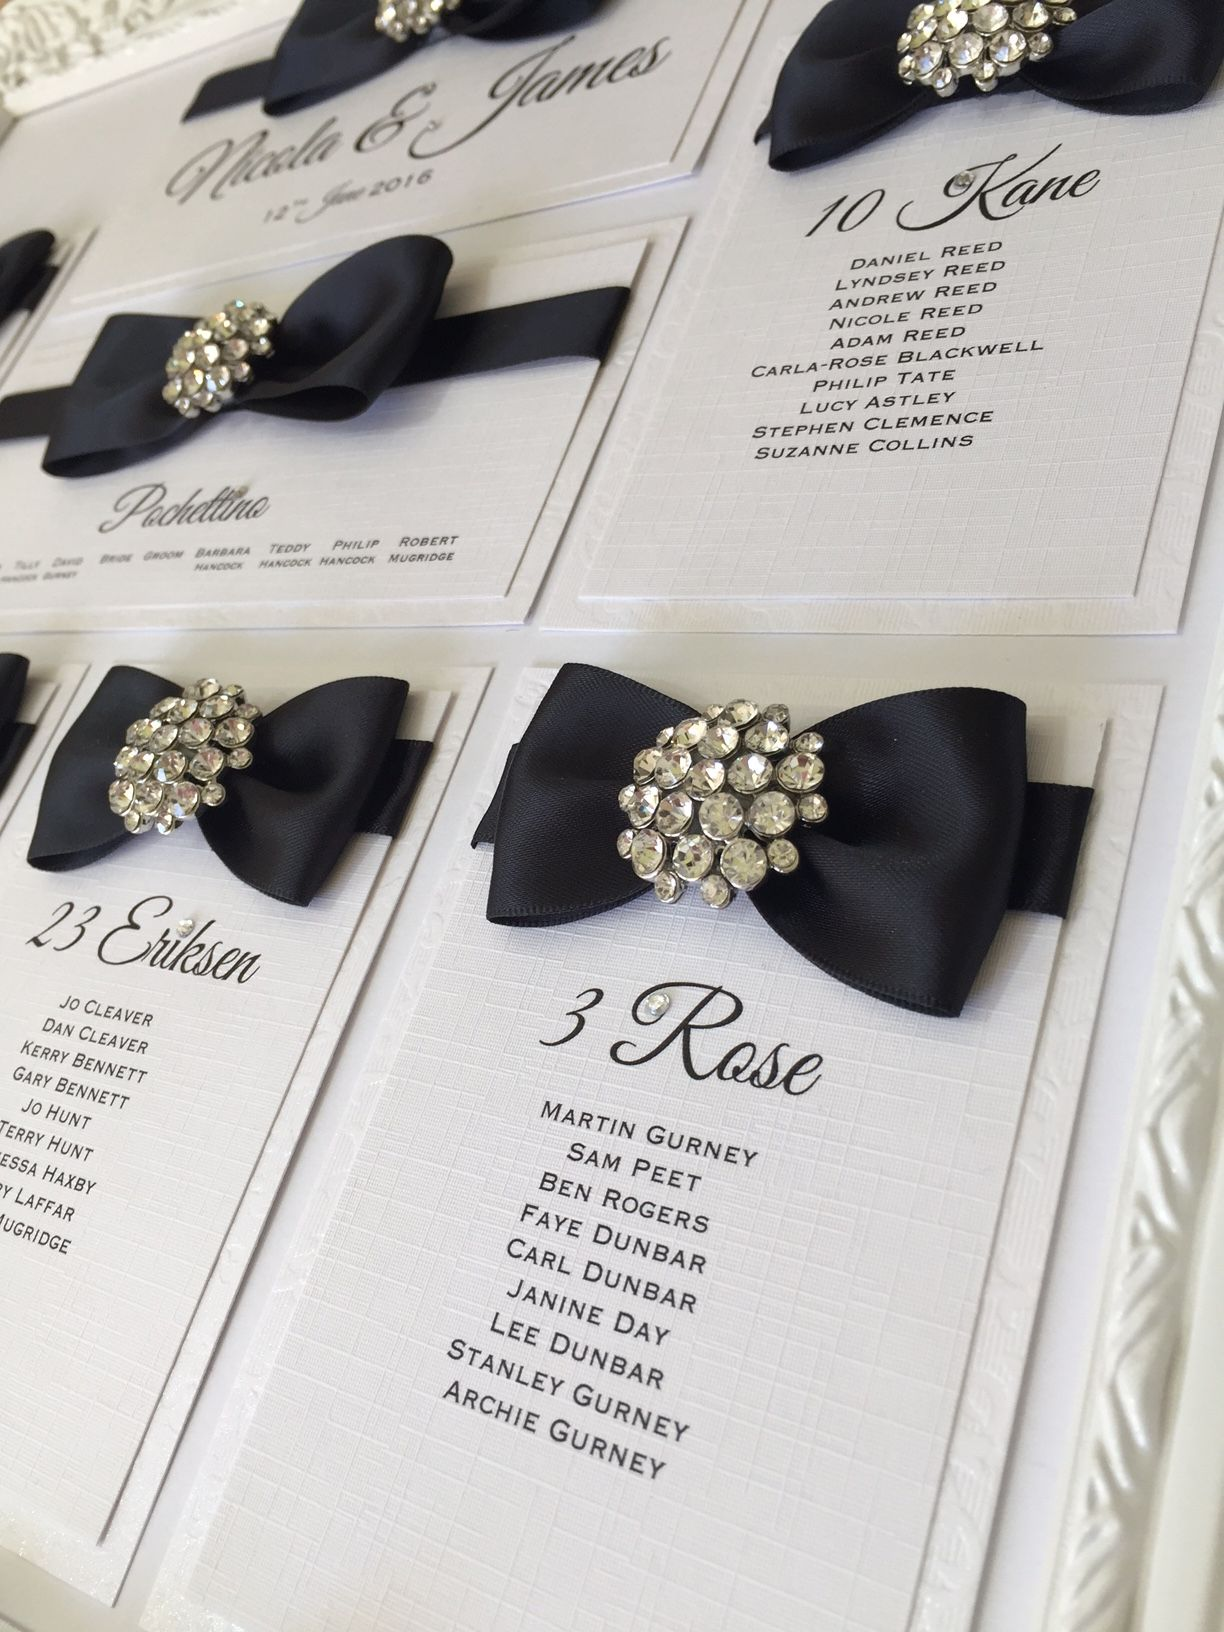 Black tie seating plan with crystal